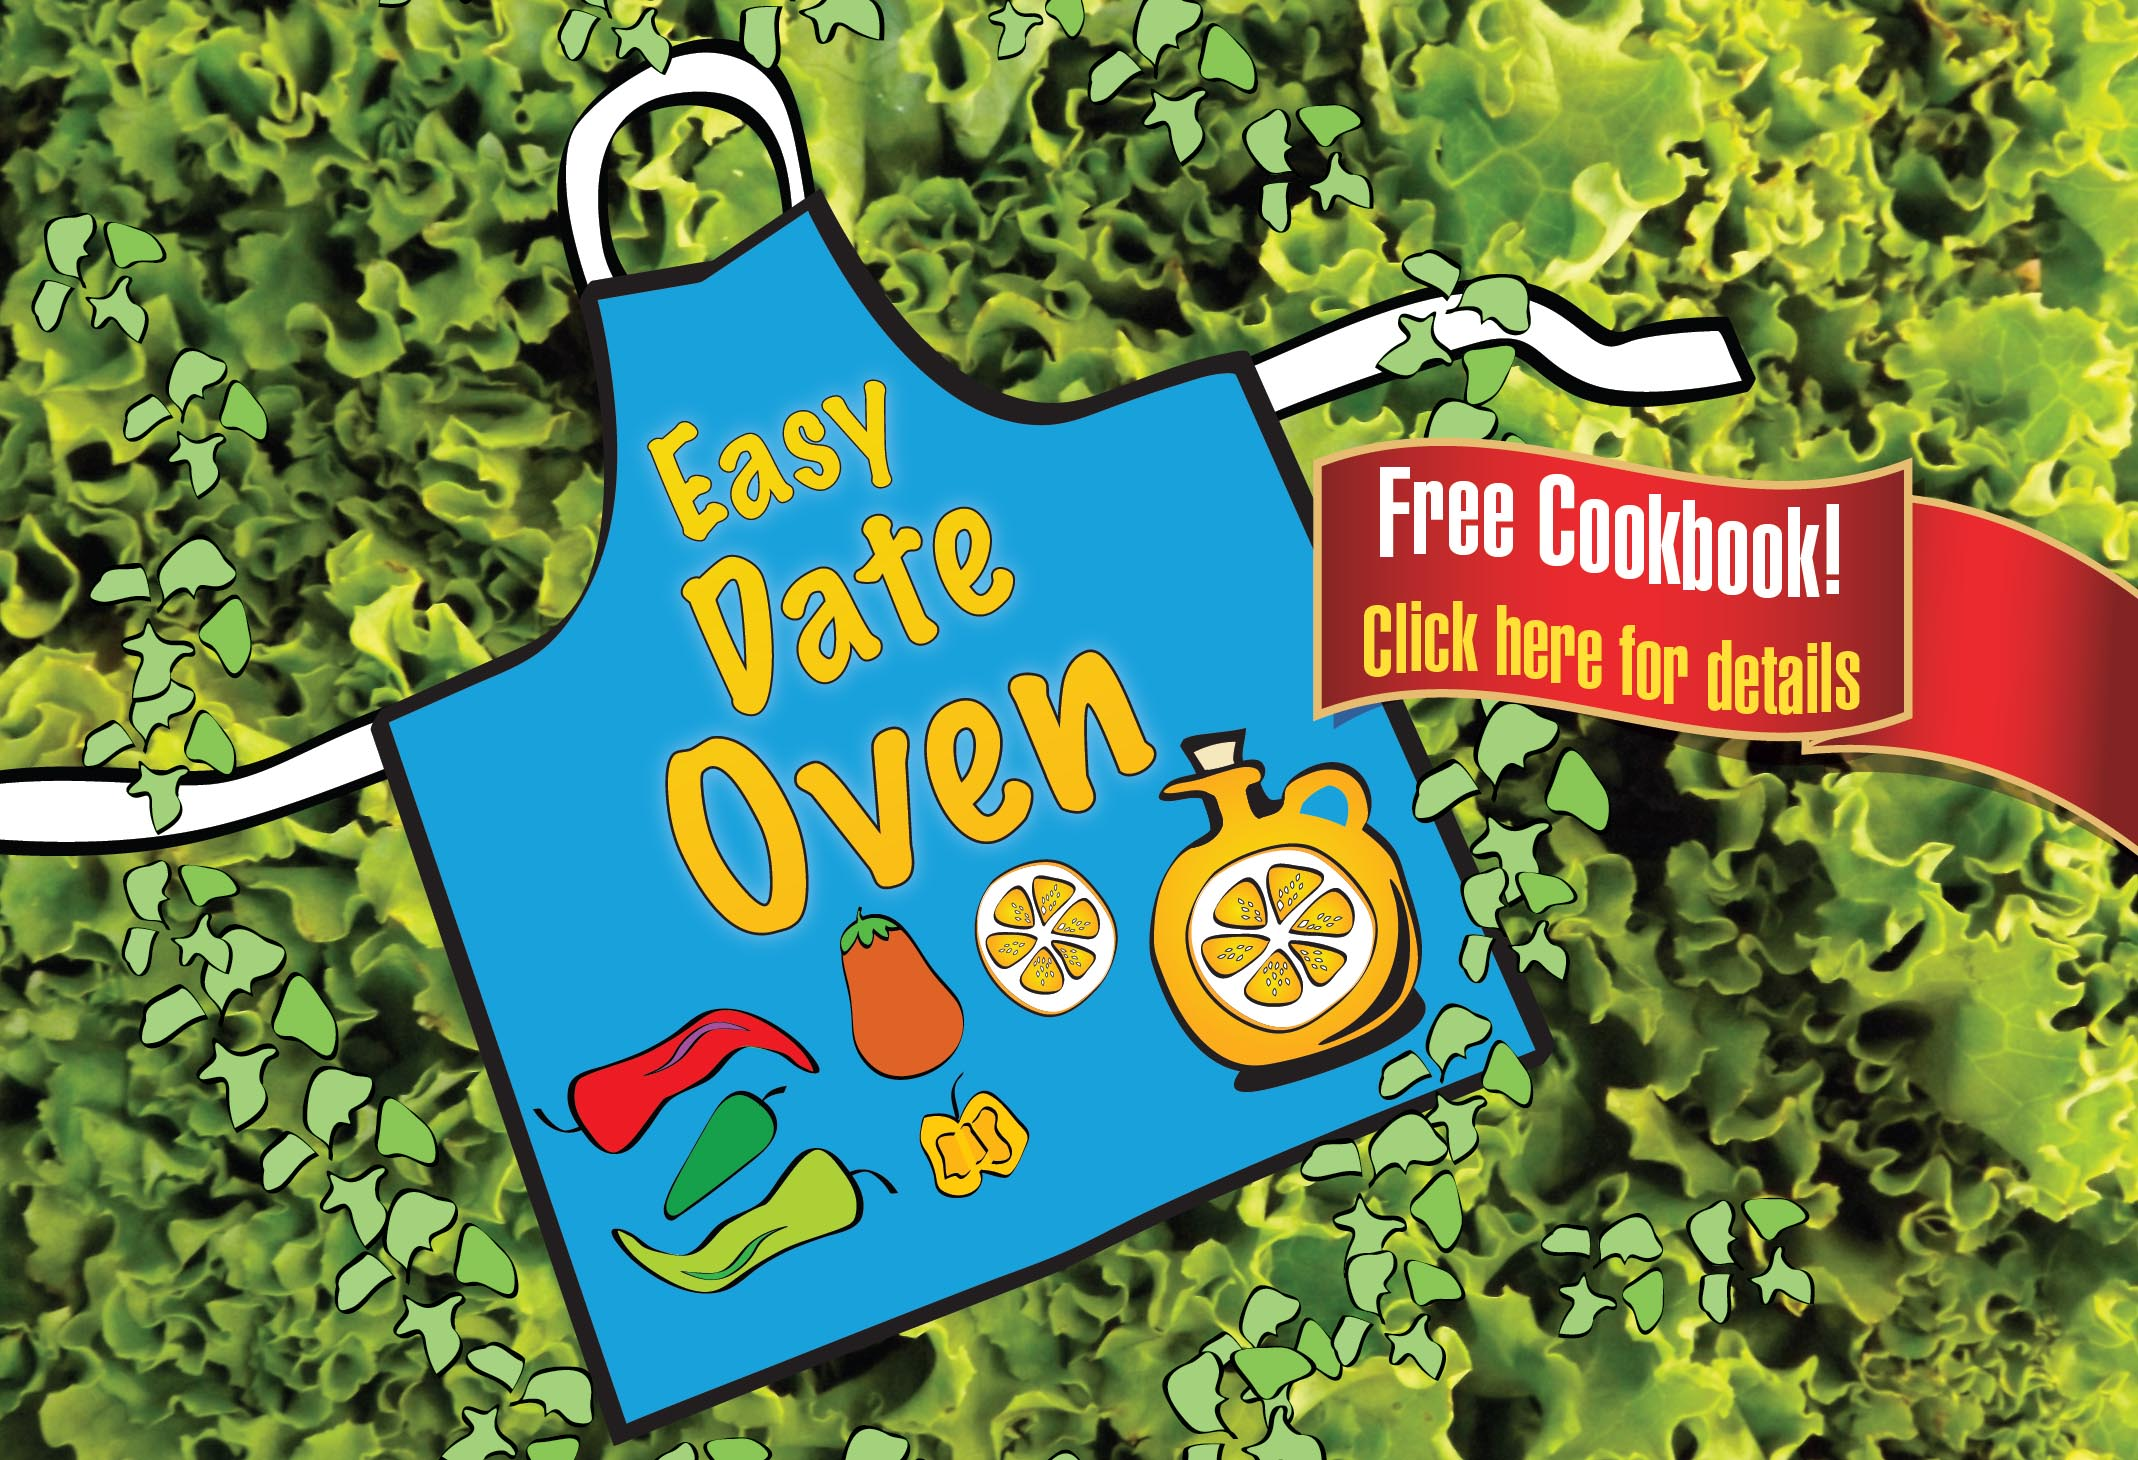 Free Cookbook Offer! Eatin's Canada - Easy Date Oven